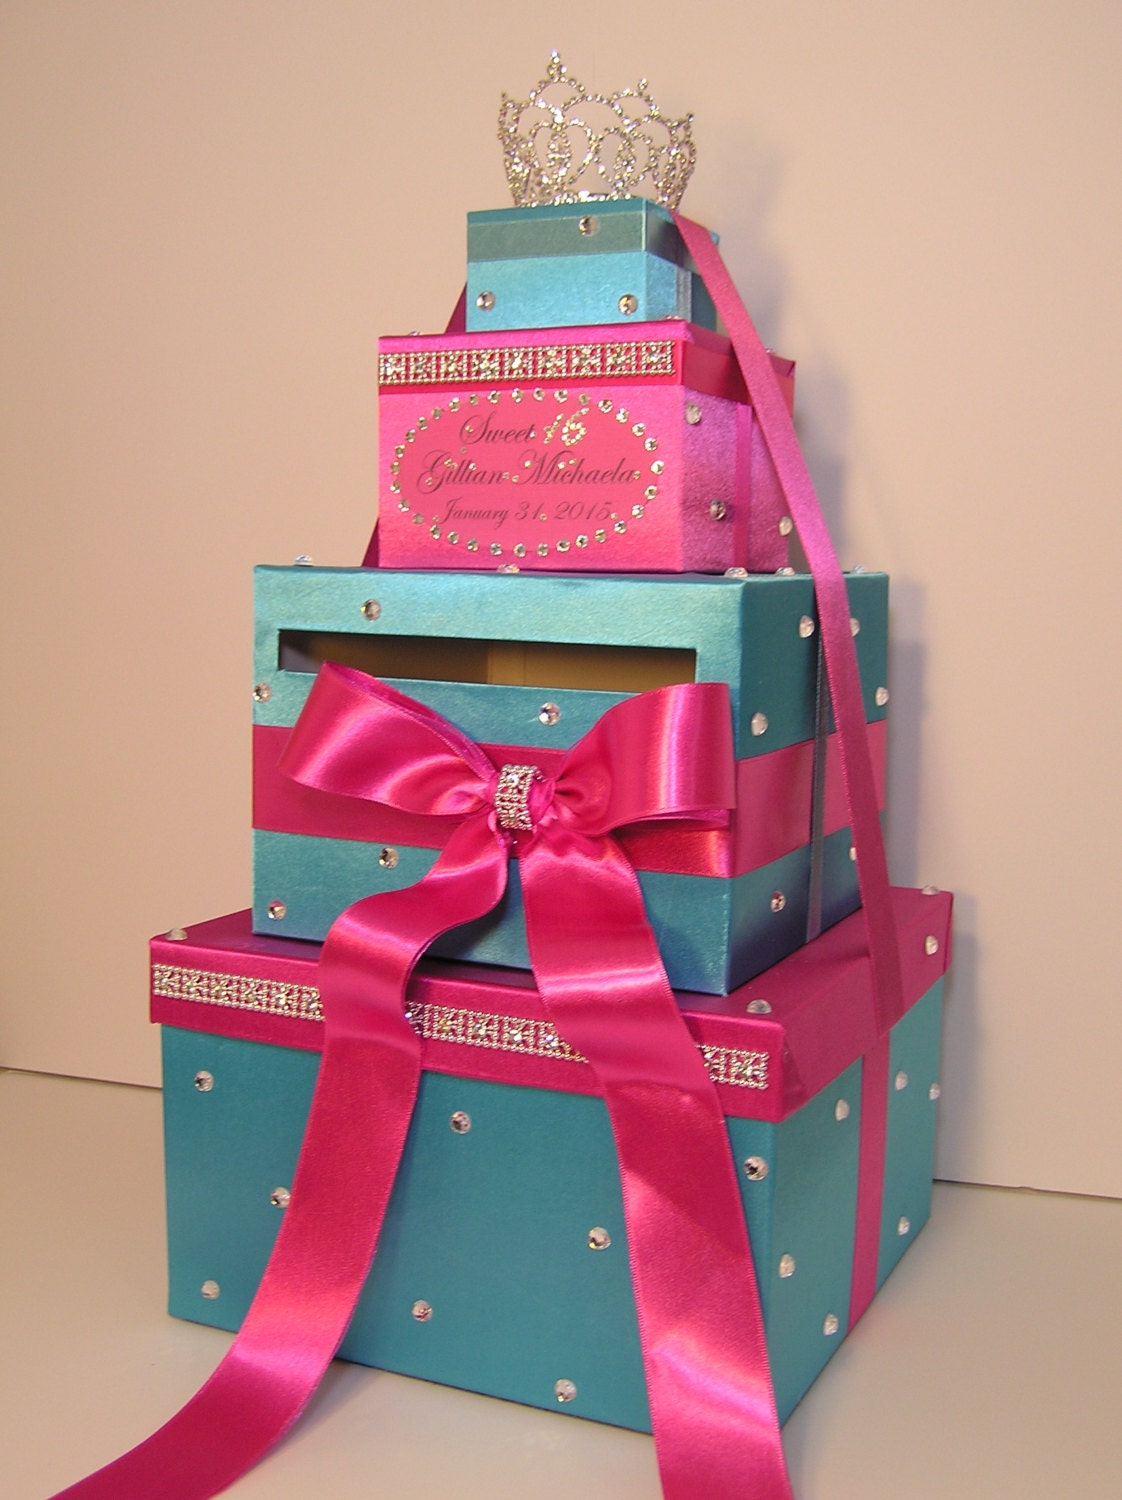 Quinceanera Sweet 16 Wedding Card Box Gift Card Box Hot Pink And Turquoise Money Box Holder Customize In Your Color Custom Made